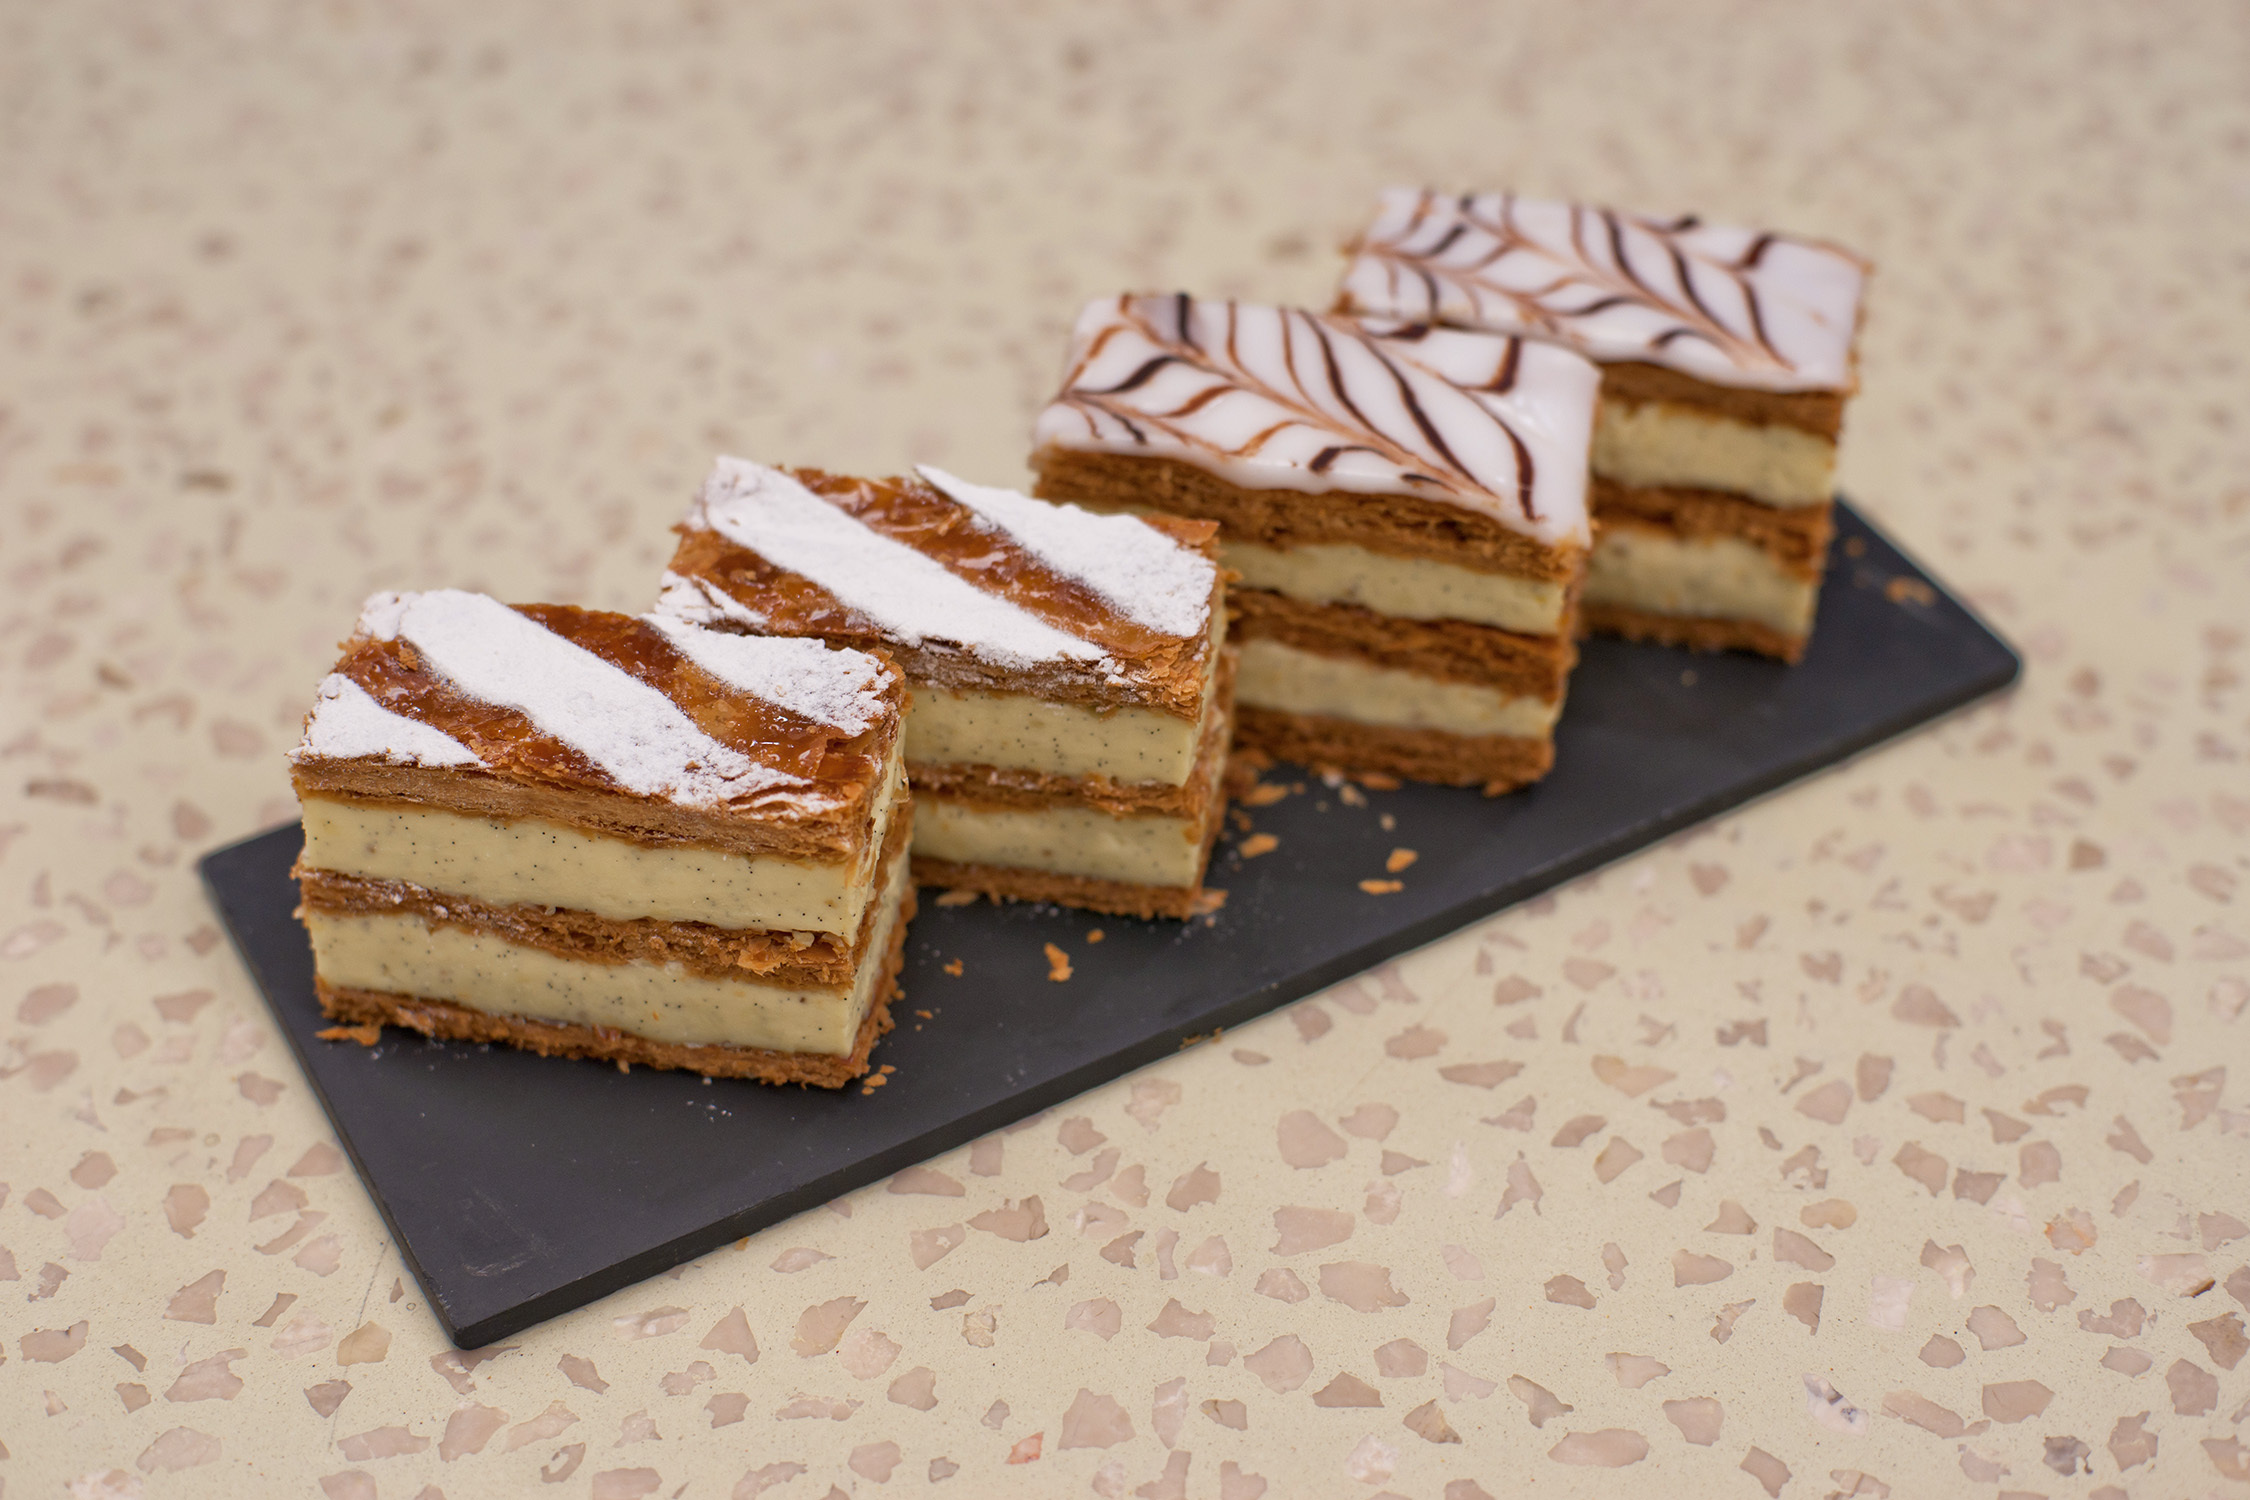 Mille-Feuille at Mille-Feuille